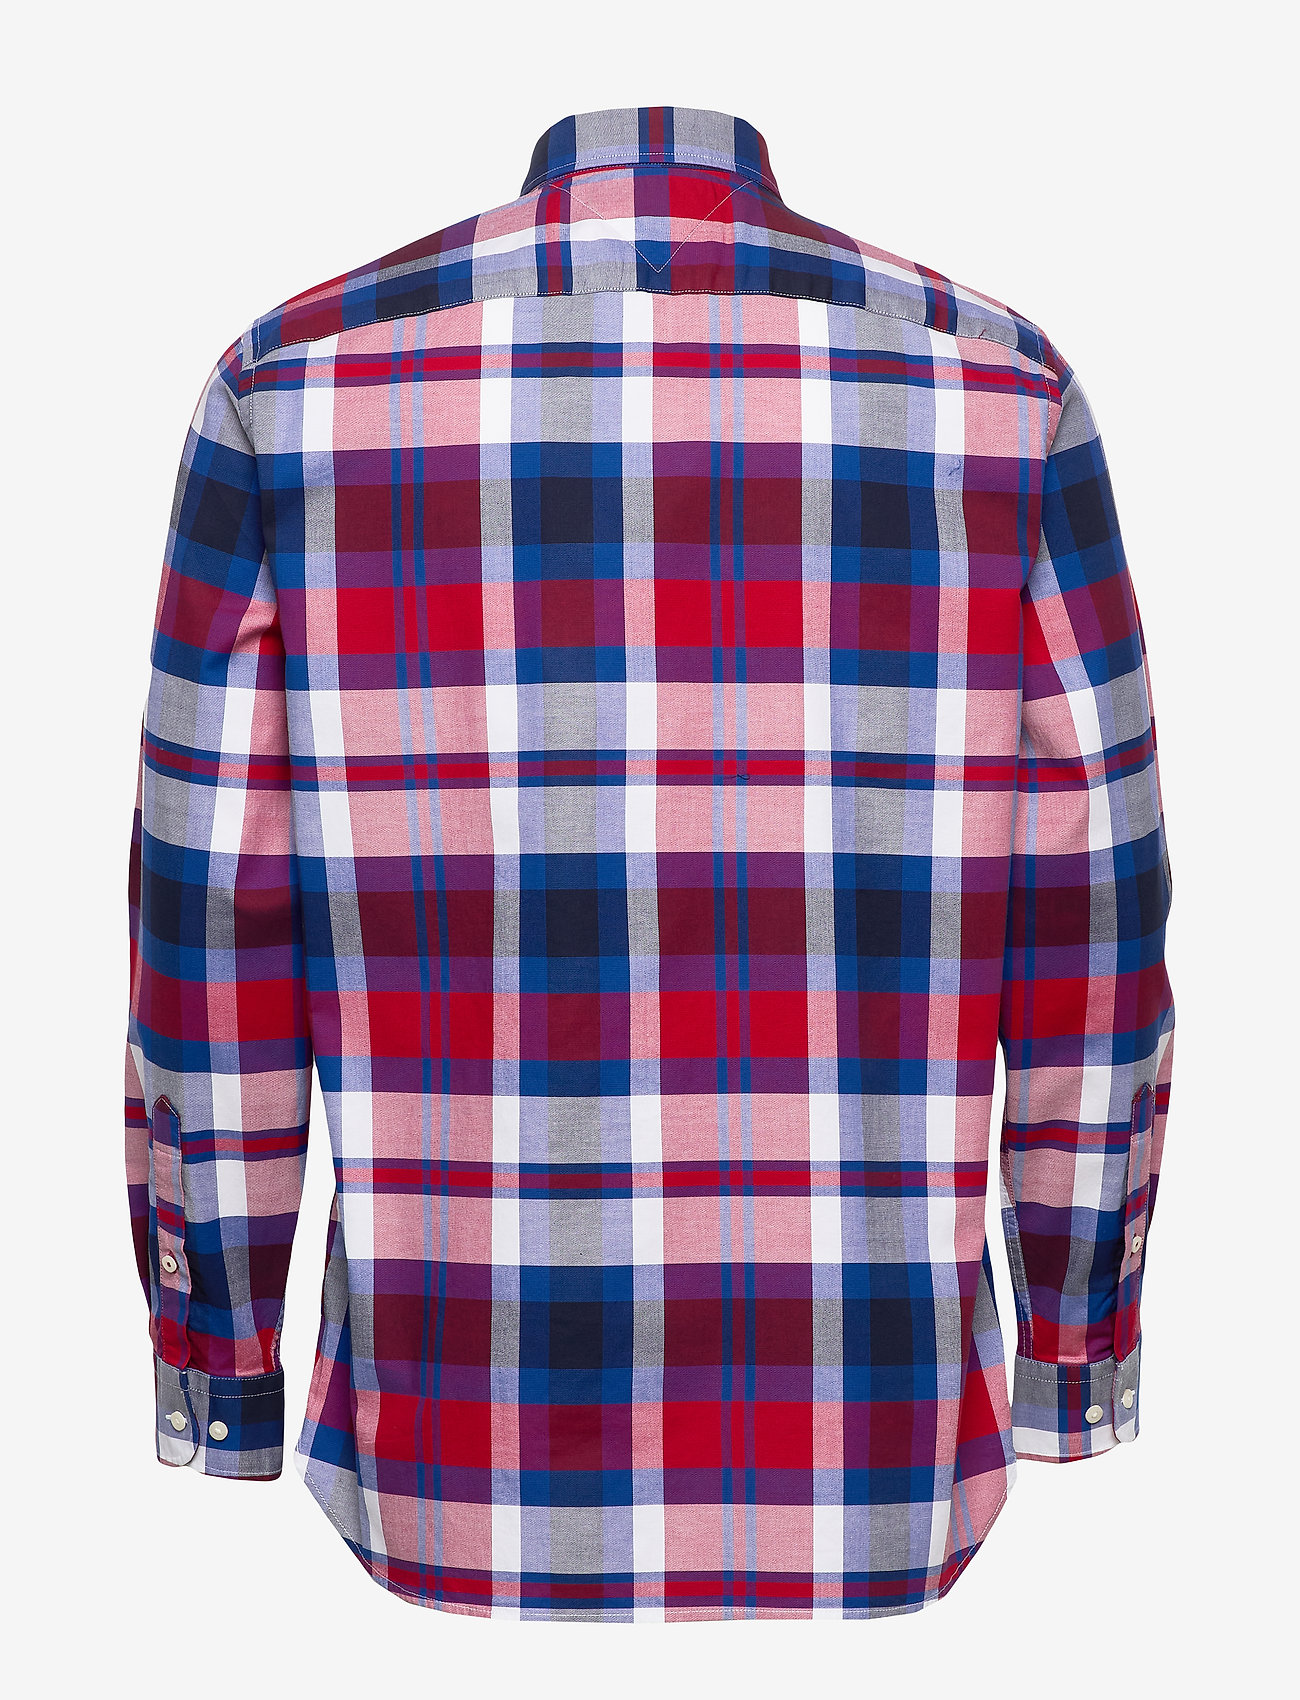 Tommy Hilfiger - FLEX BRIGHT MIDSCALE CHECK SHIRT - rutede skjorter - primary red / phthalo blue / m - 1